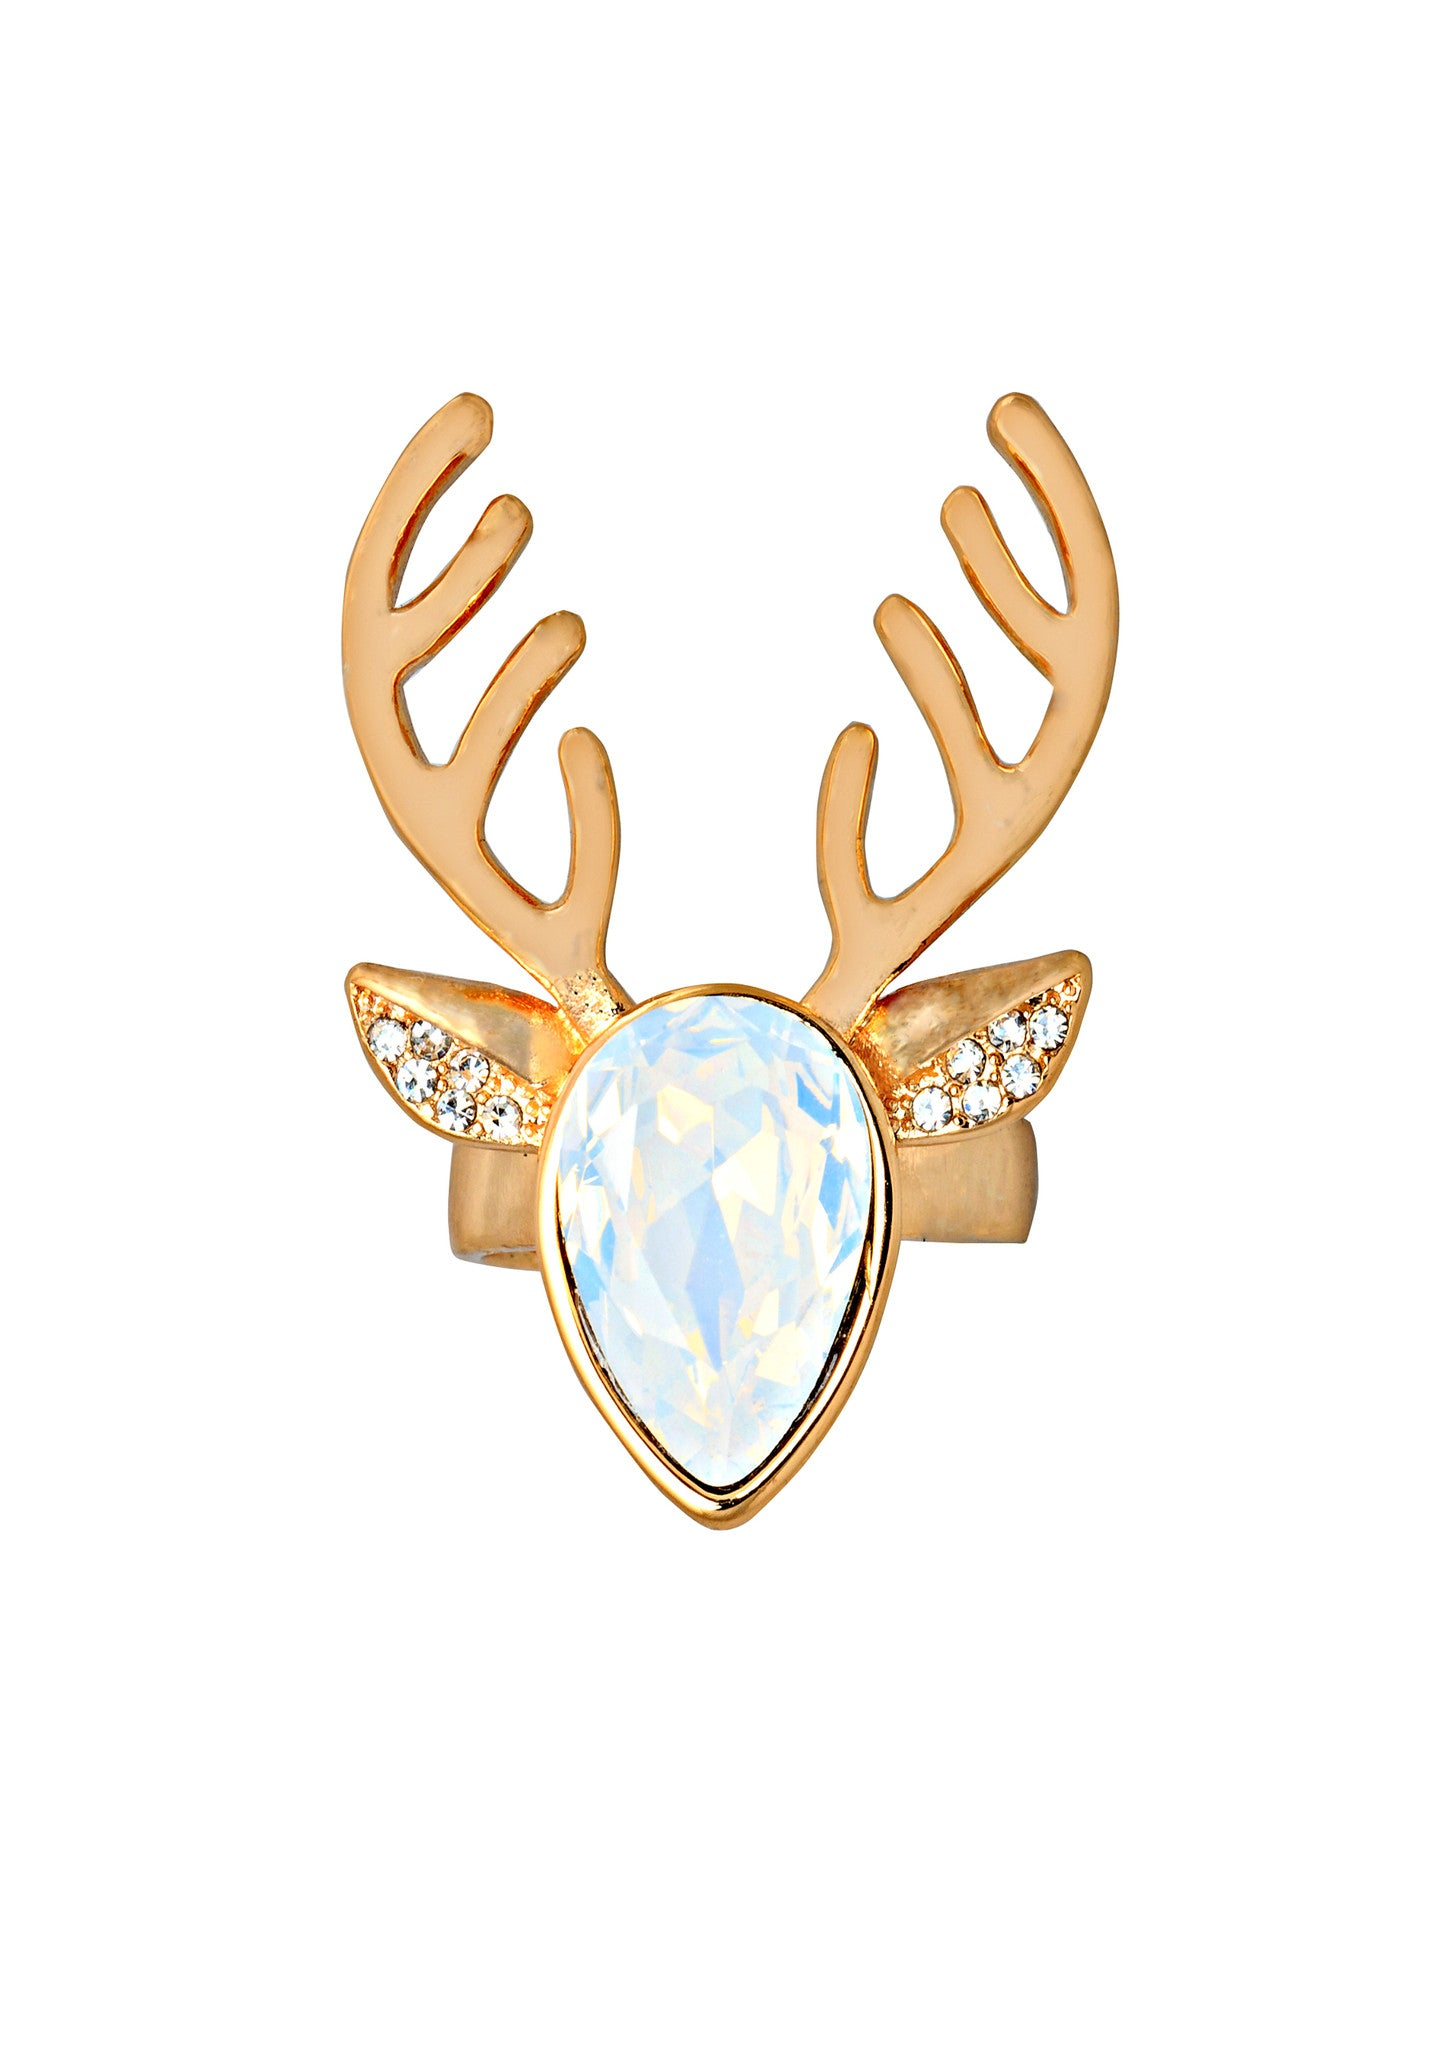 My Deer Opal Ring - ChicMela